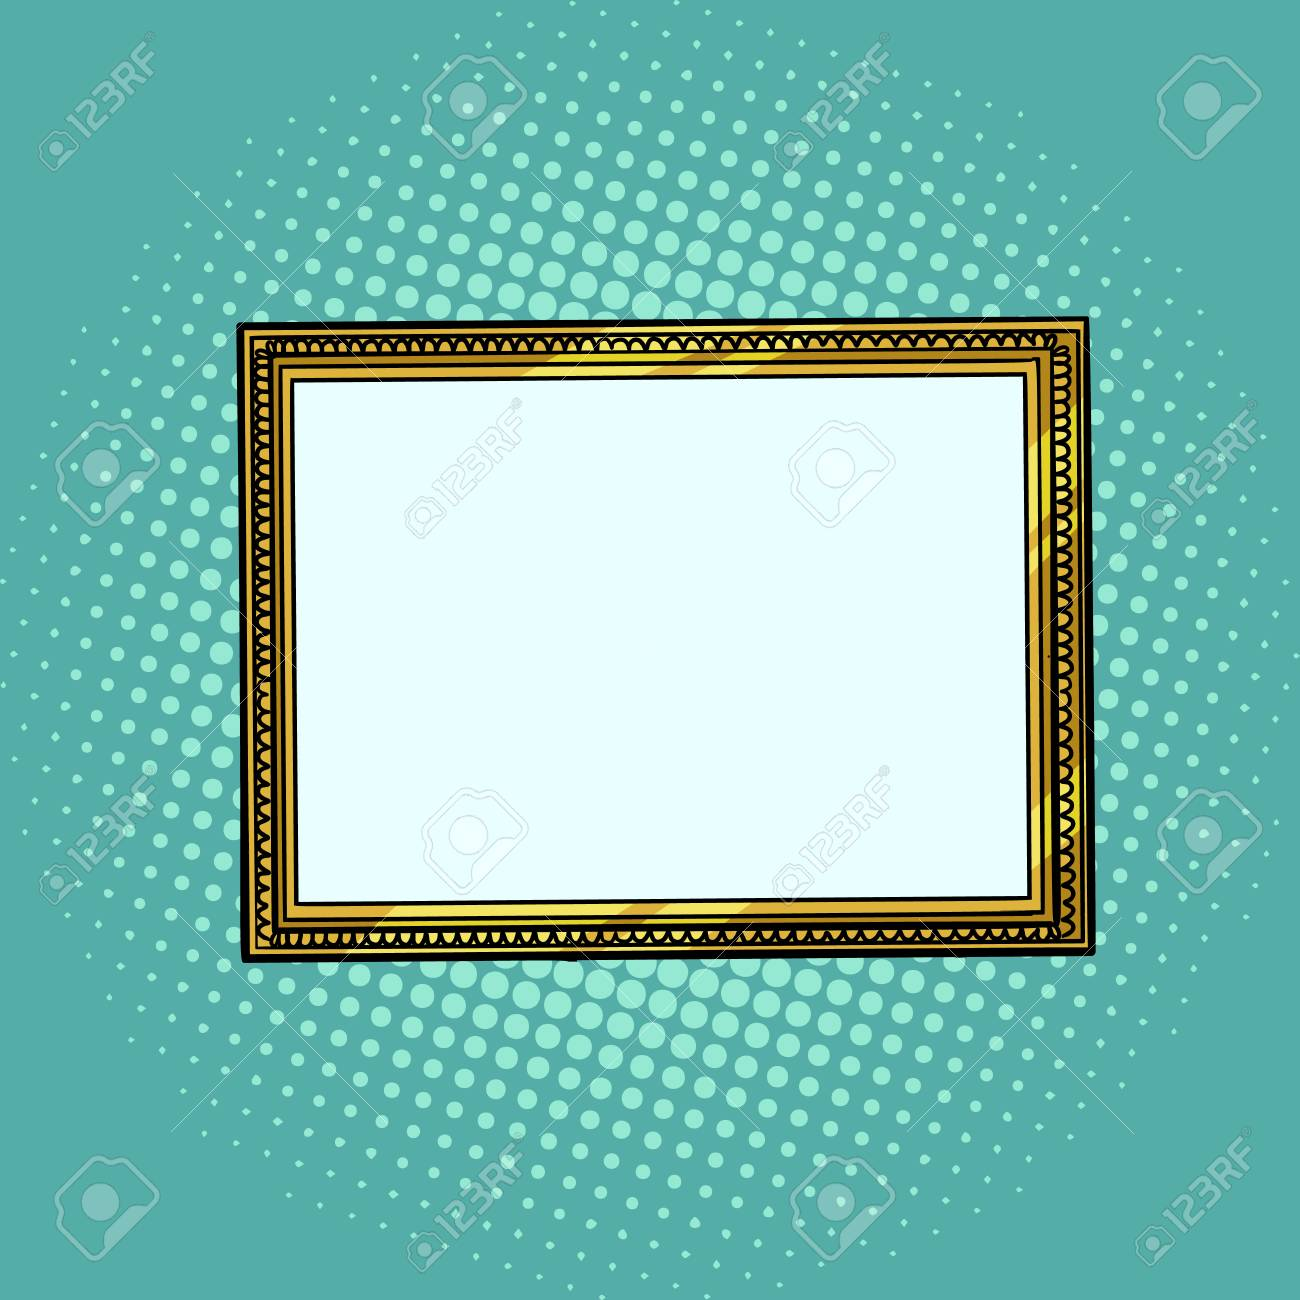 picture frame, blank pattern - 123120773